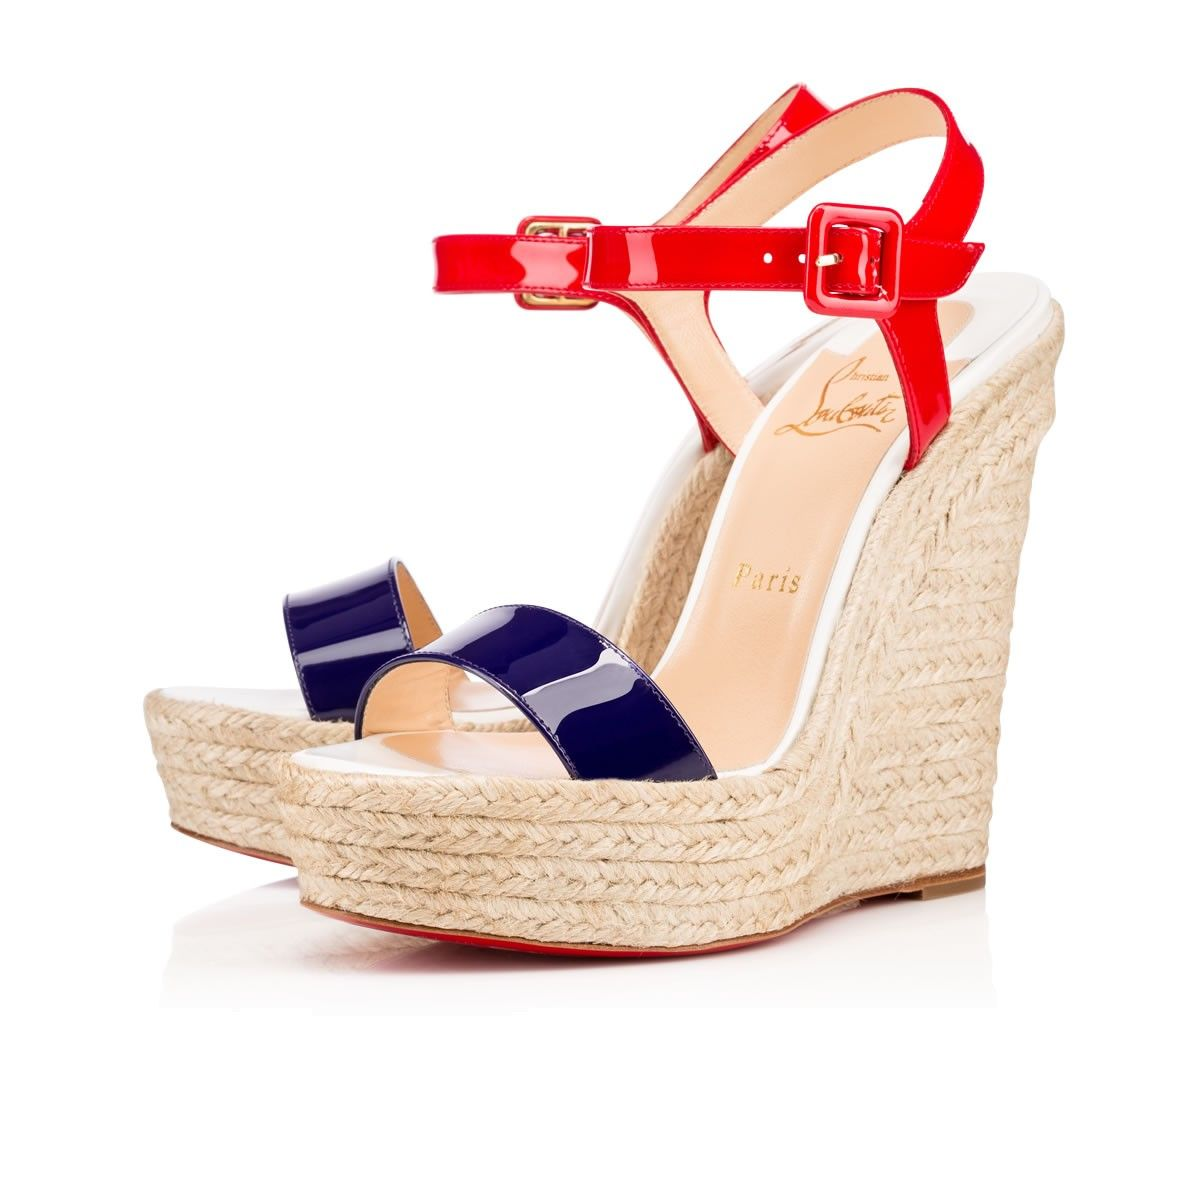 8babc315b42 ... wholesale christian louboutin fashion high heels fashion girls shoes  and men shoes all here for you